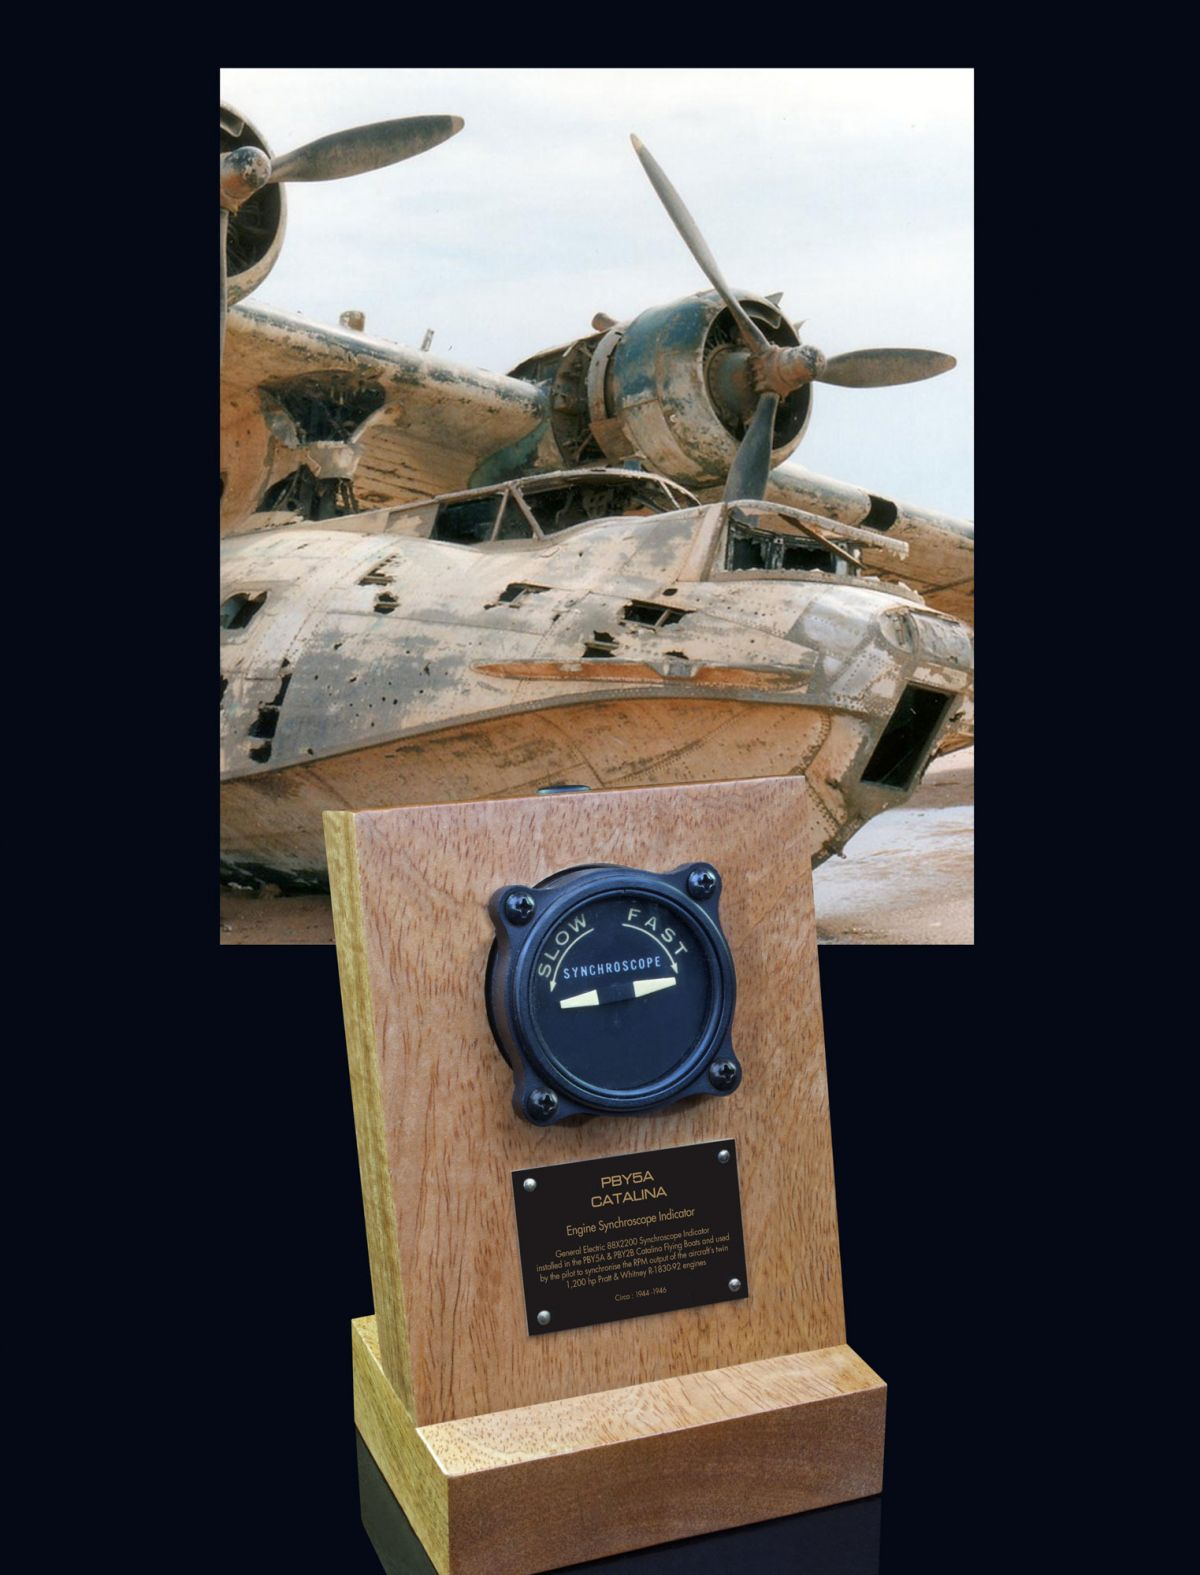 PBY CATALINA FLYING BOAT GENERAL ELECTRIC, SYNCHROSCOPE INDICATOR